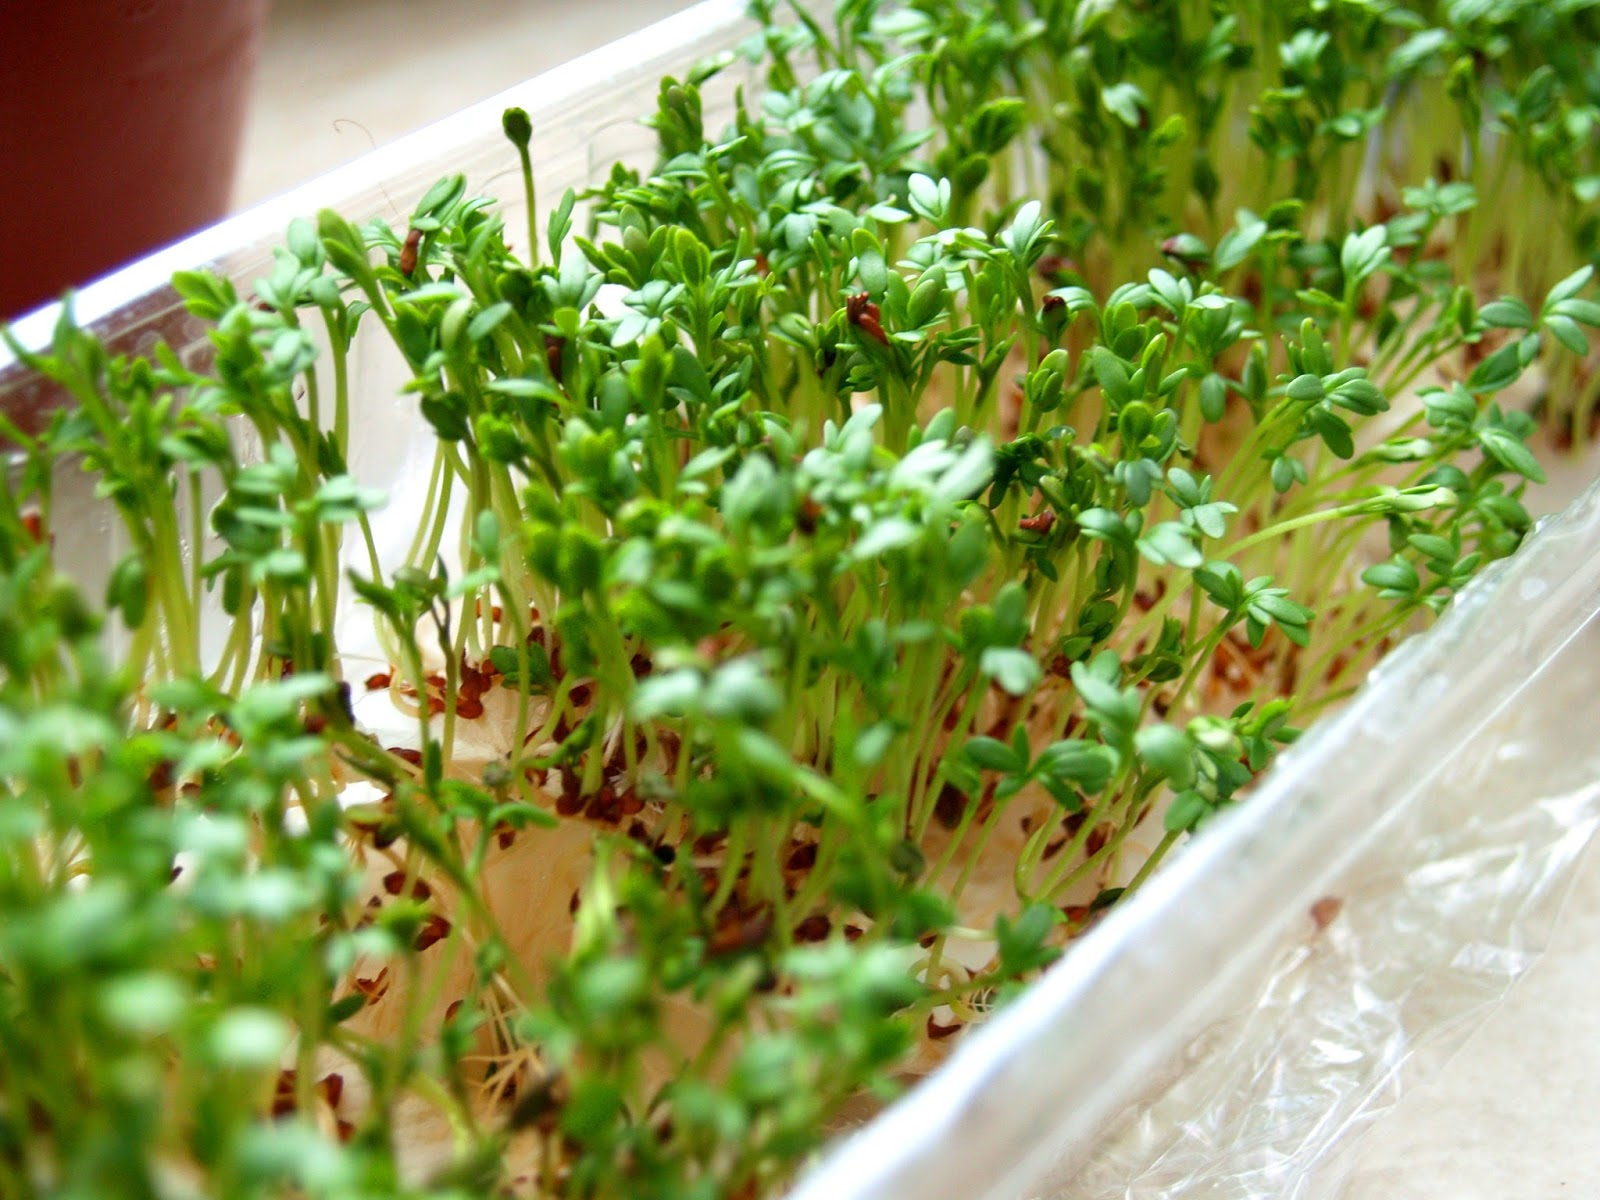 Gourmet Balance: from home-made to Gourmet: How to grow